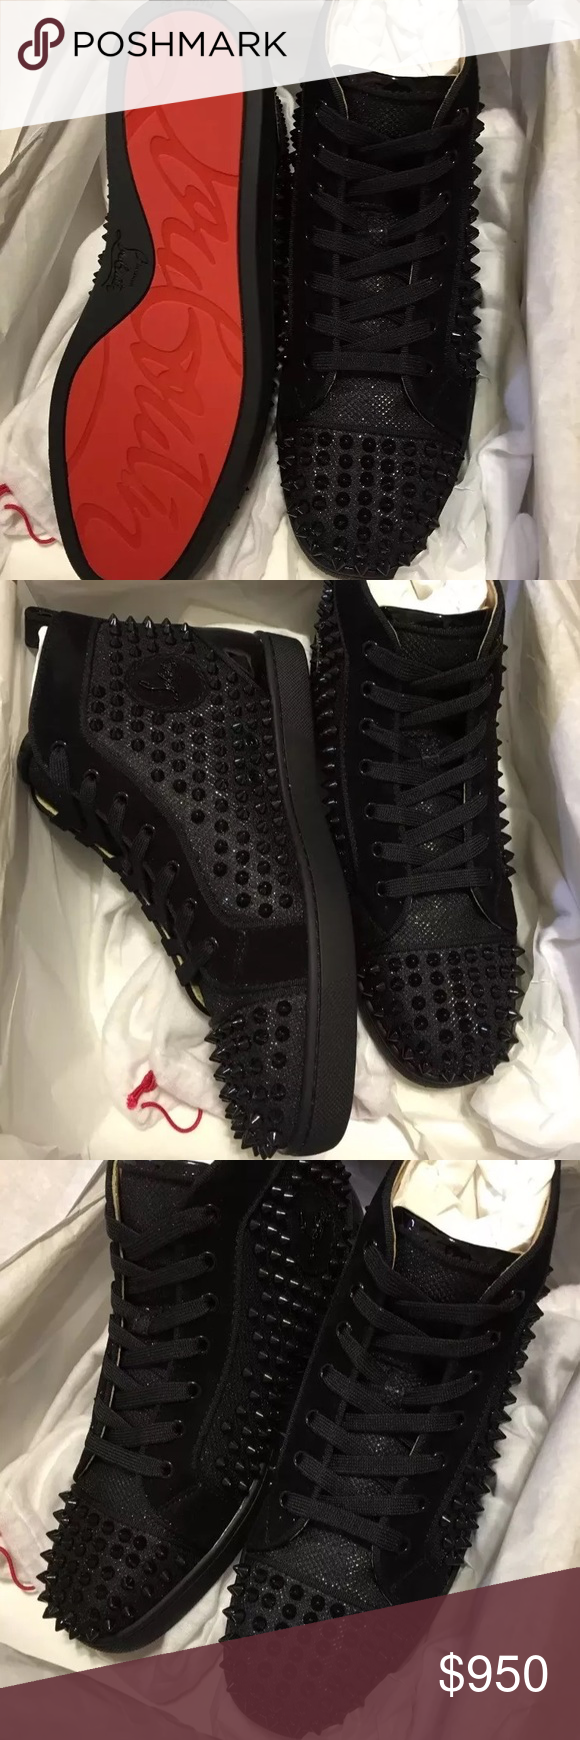 974211b8333 Christian Louboutin Louis Orlato Spikes Mens Flats 100% Authentic ...